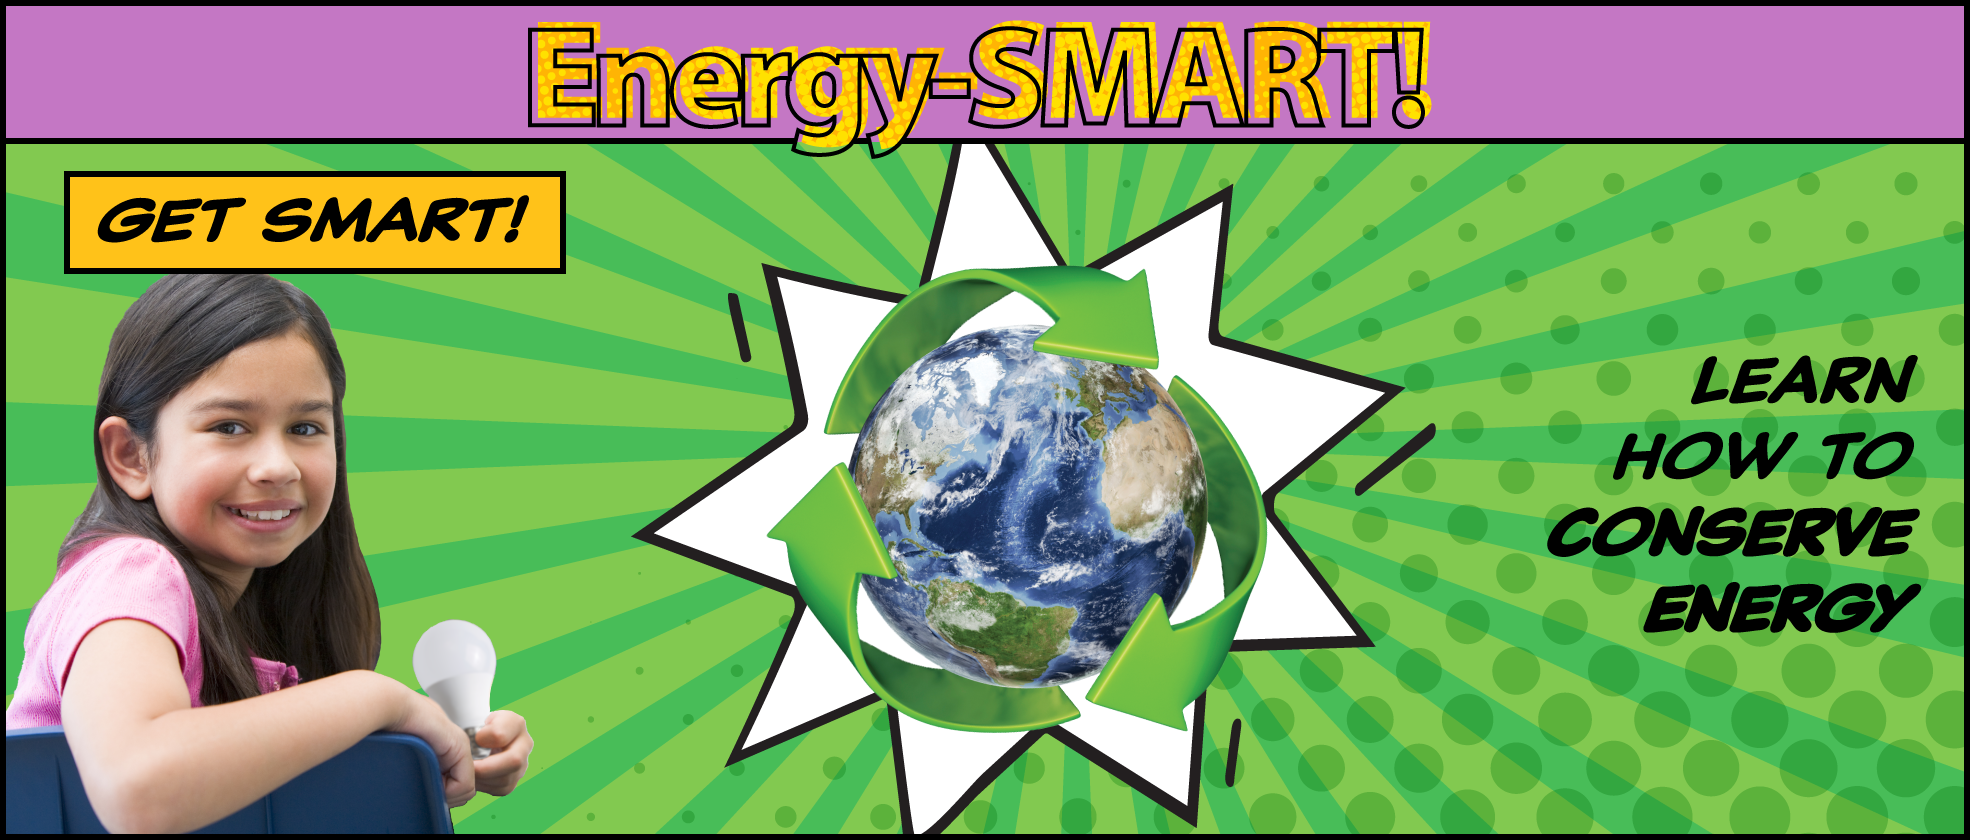 Energy-SMART: Get SMART! Learn how to conserve energy